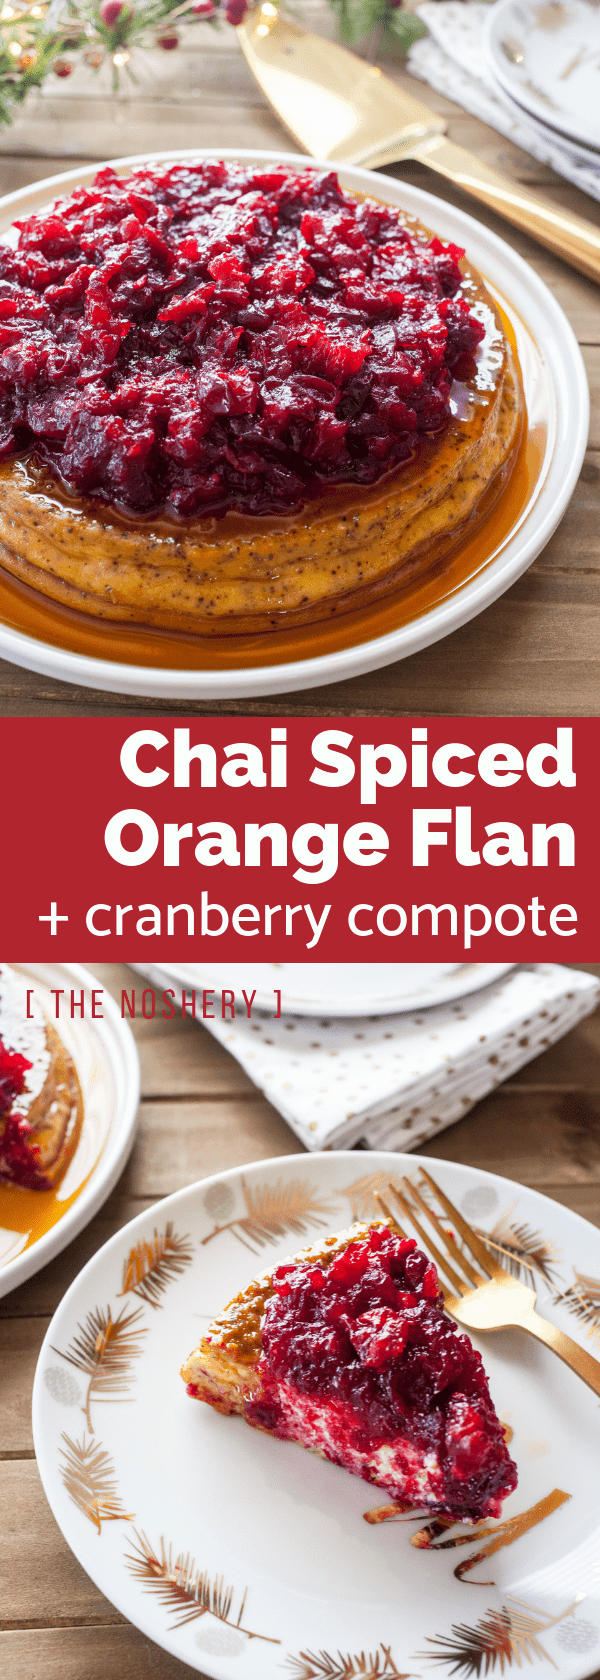 Chai Spiced Orange Flan with Cranberry | Creamy cheese flan spiced with chai and orange and then topped with a sweet and tart cranberry compote. | The Noshery